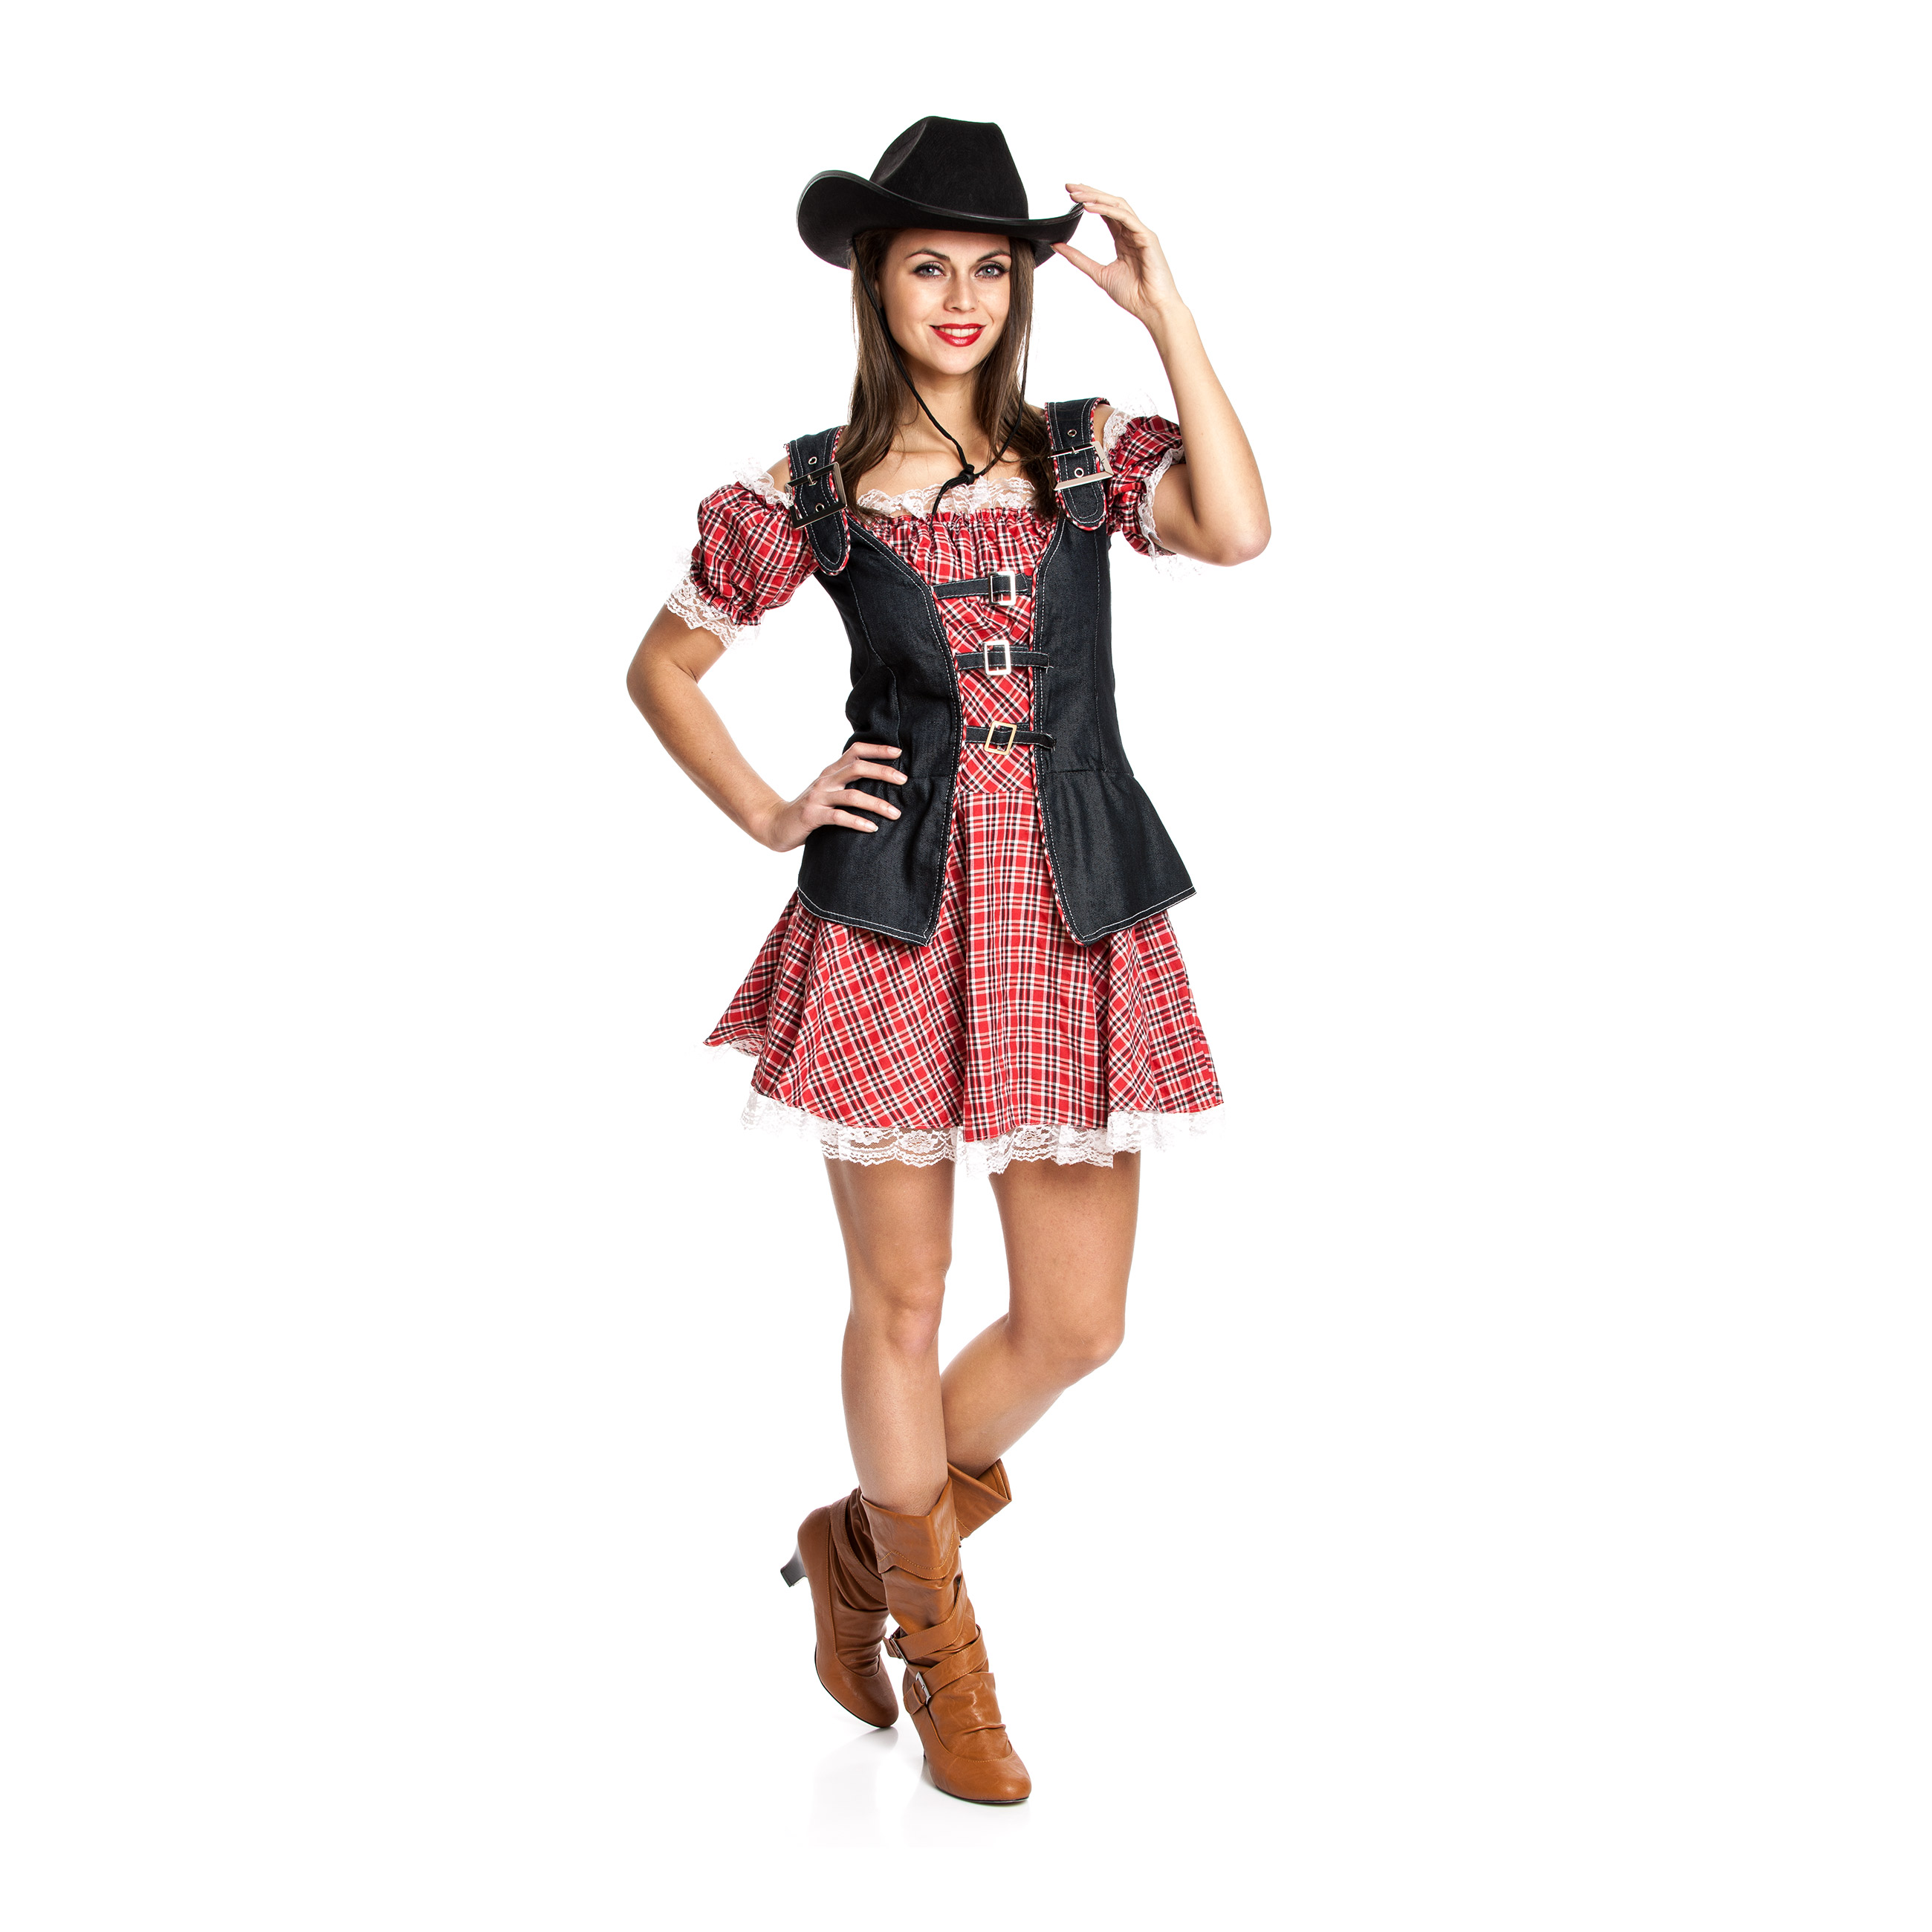 cowgirl kost m damen cowboy kost m sexy wild west verkleidung frauen kleid neu ebay. Black Bedroom Furniture Sets. Home Design Ideas